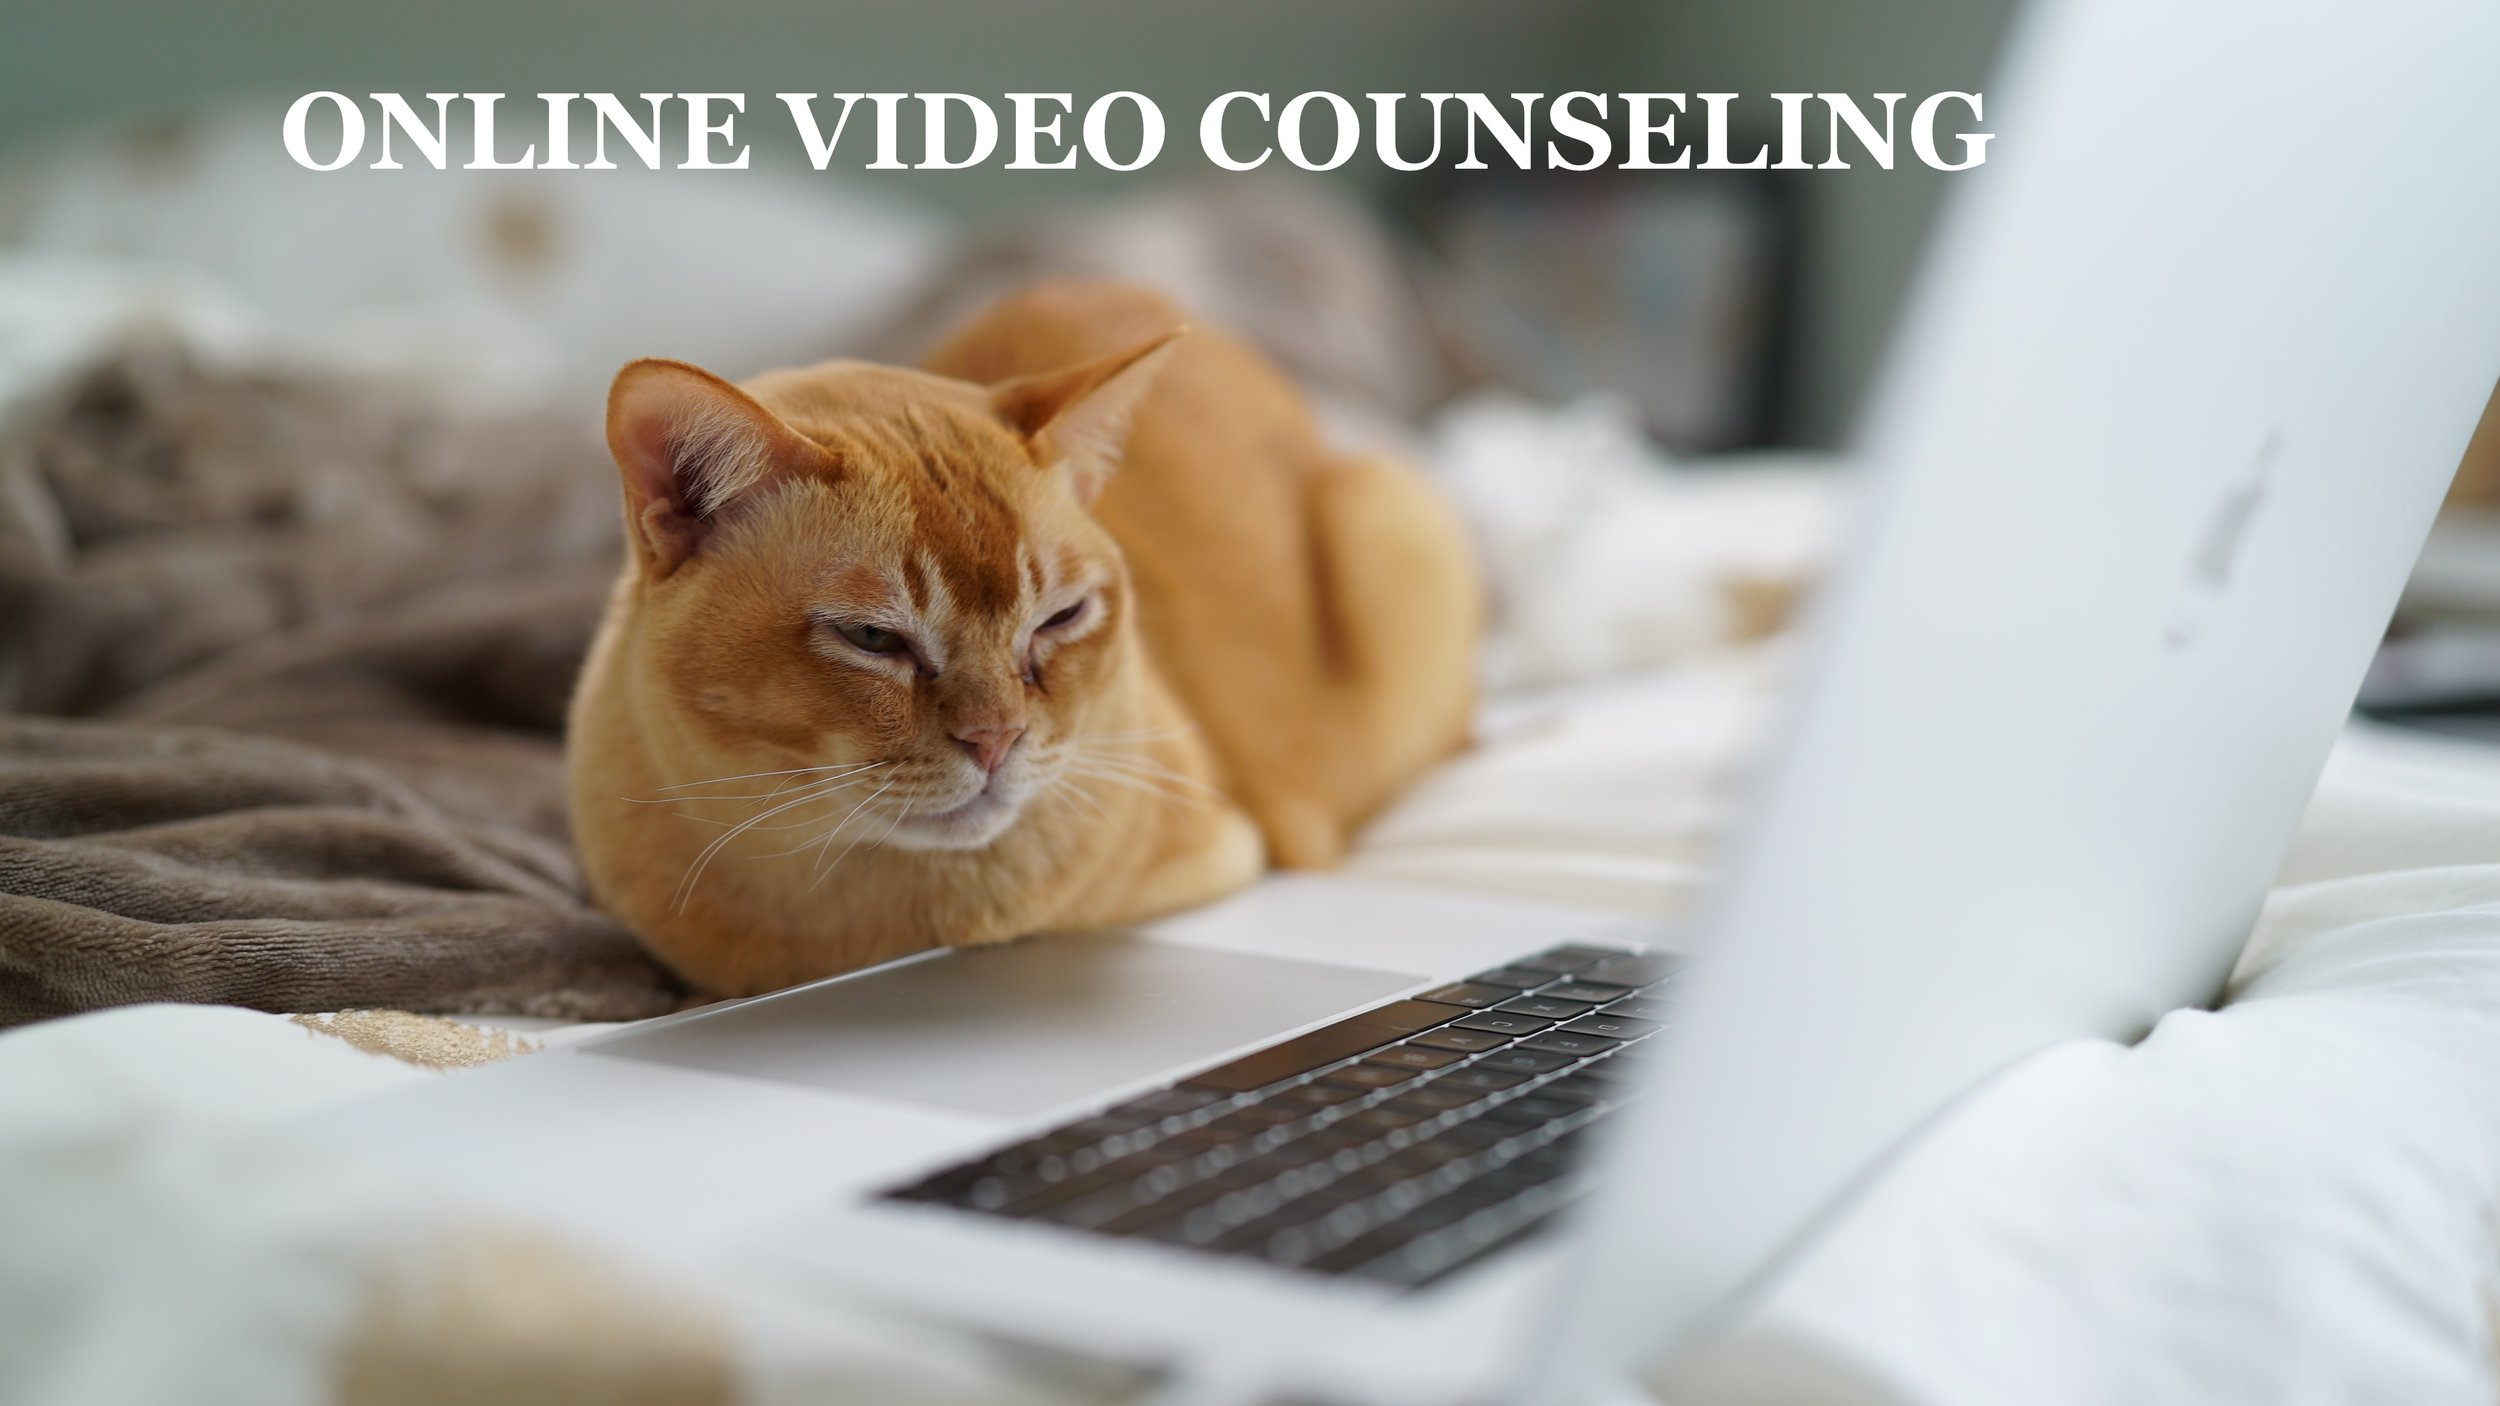 VIDEO THERAPY  Online counseling is now exclusively offered for individual therapy! Video are not only an added convenience through inclement weather, travel, but can be just as effective as traditional in-person therapy. Maybe you work or live too far from my office? No longer does location have to get in the way of choosing the therapist who is right for you!    Still not sure? Try out a  Free 15 minute Video Consultation  to get a sneak-peak of what it's like!